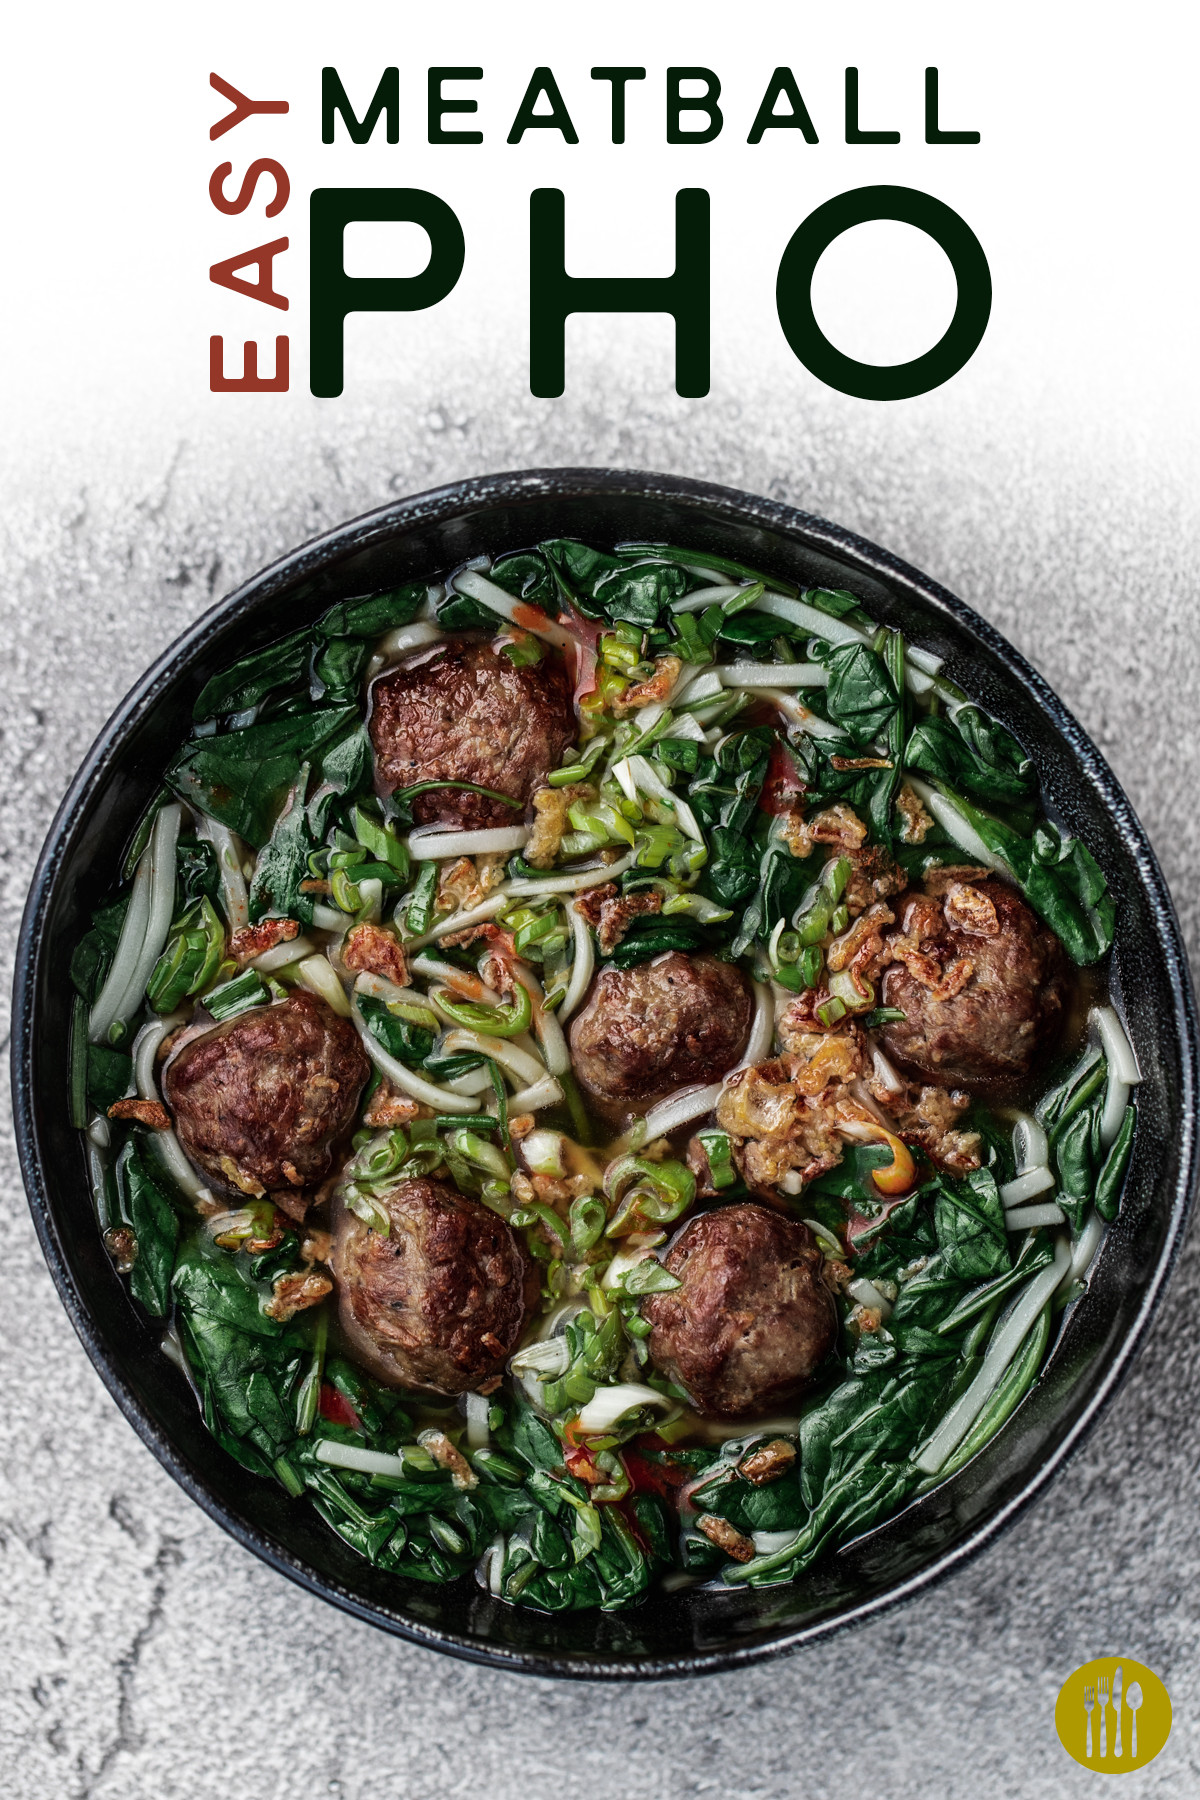 A bowl of easy meatball pho in a black bowl on a grey background